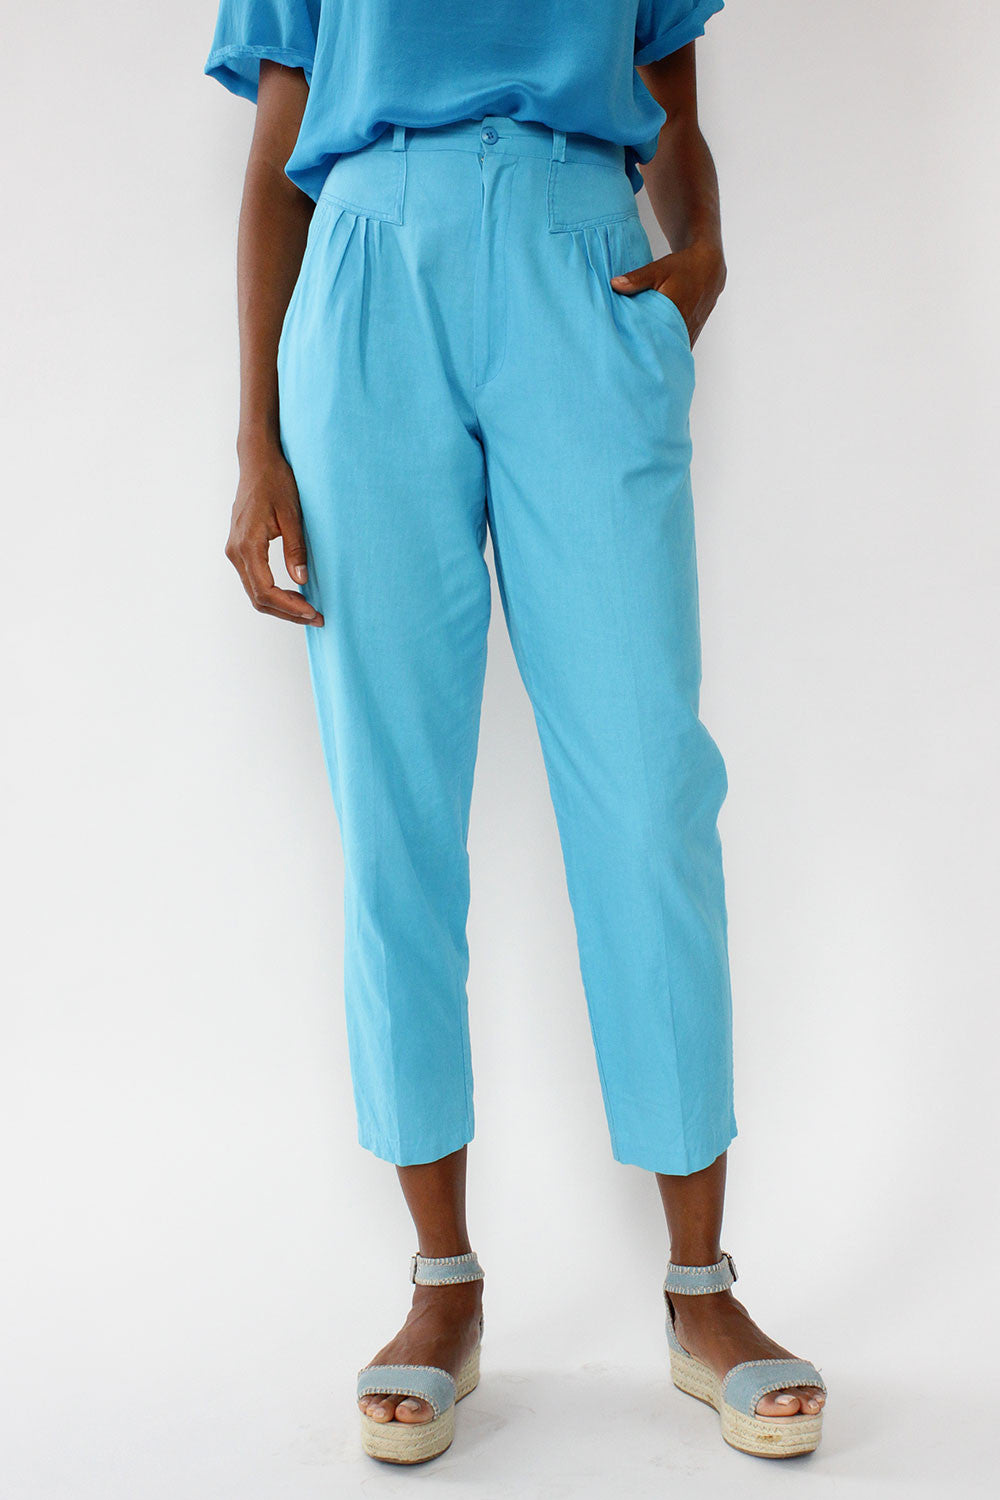 Clear Skies Cotton Slacks S